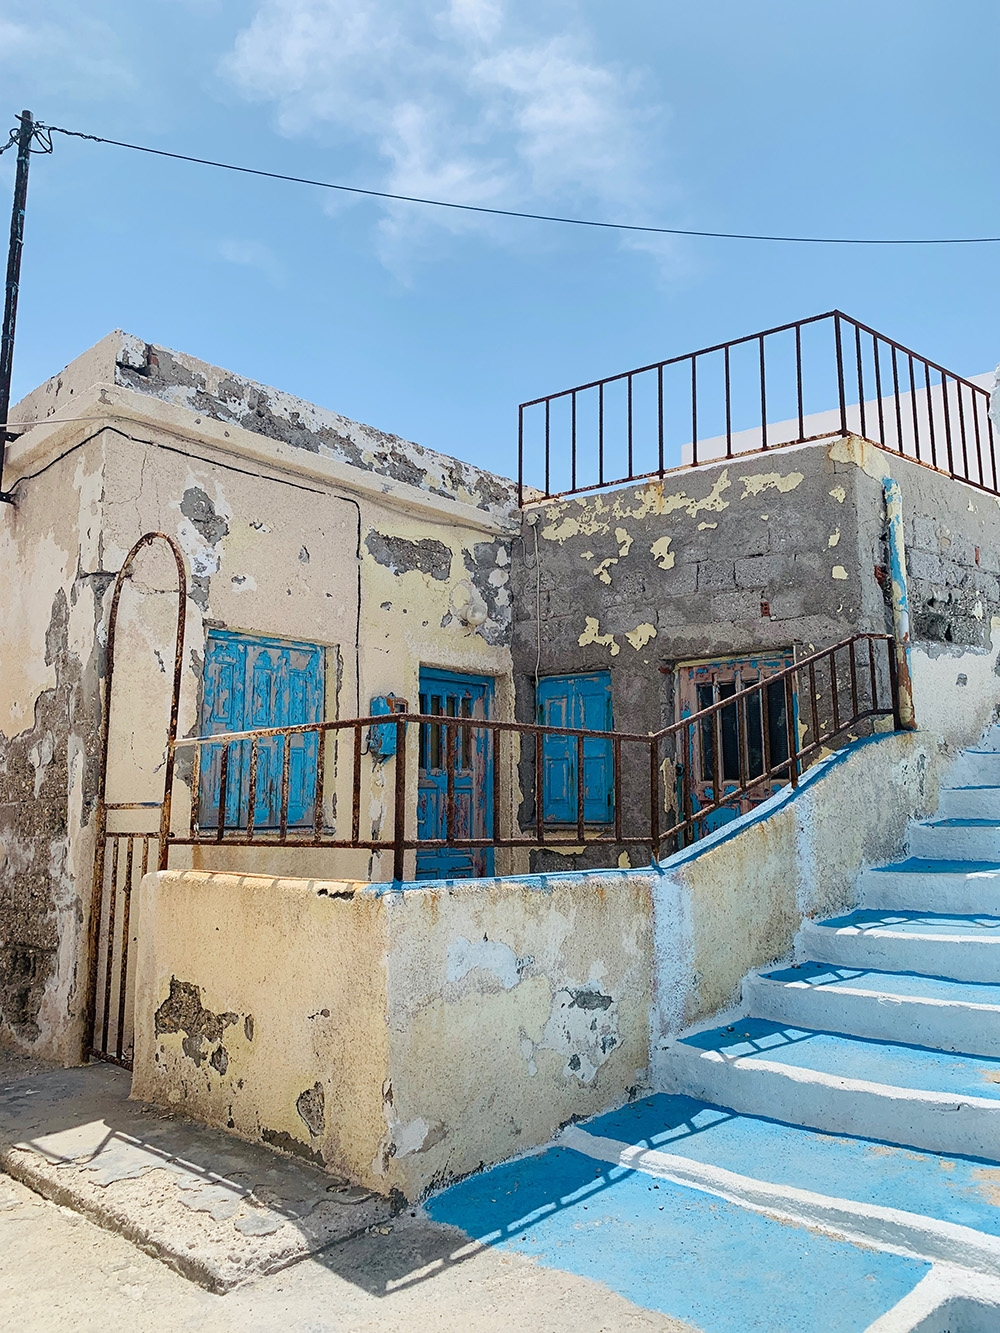 An old Greek building with peeling cream and blue paint on the walls, doors and railings. A blue staircase ascends to the second level.